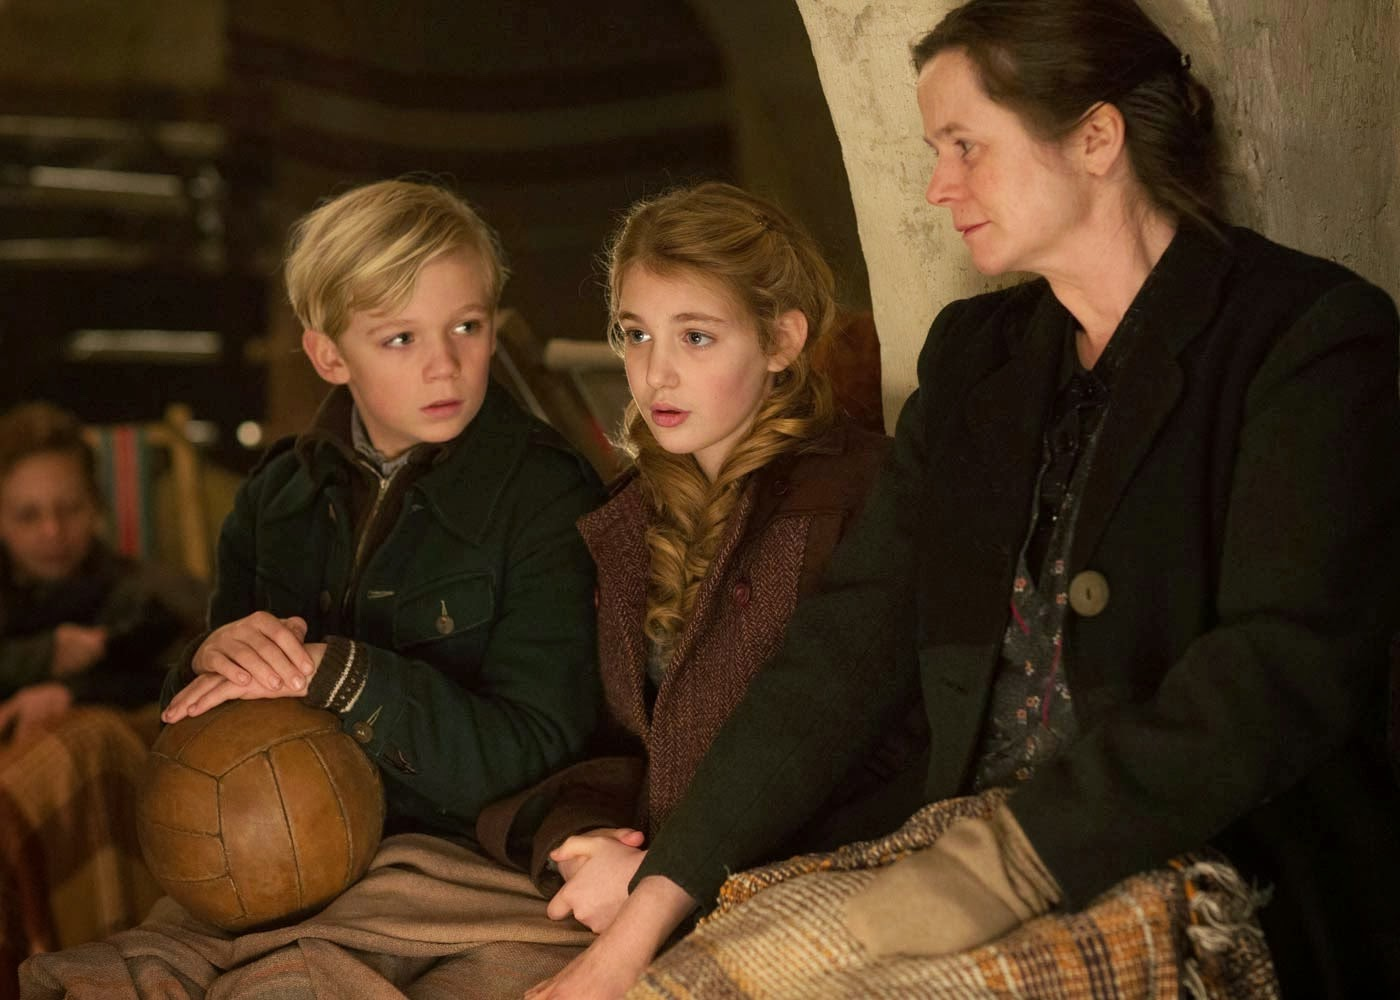 characters in book thief the book thief movie max and liesel  analyzing characters of the book thief through song rosa hubermann